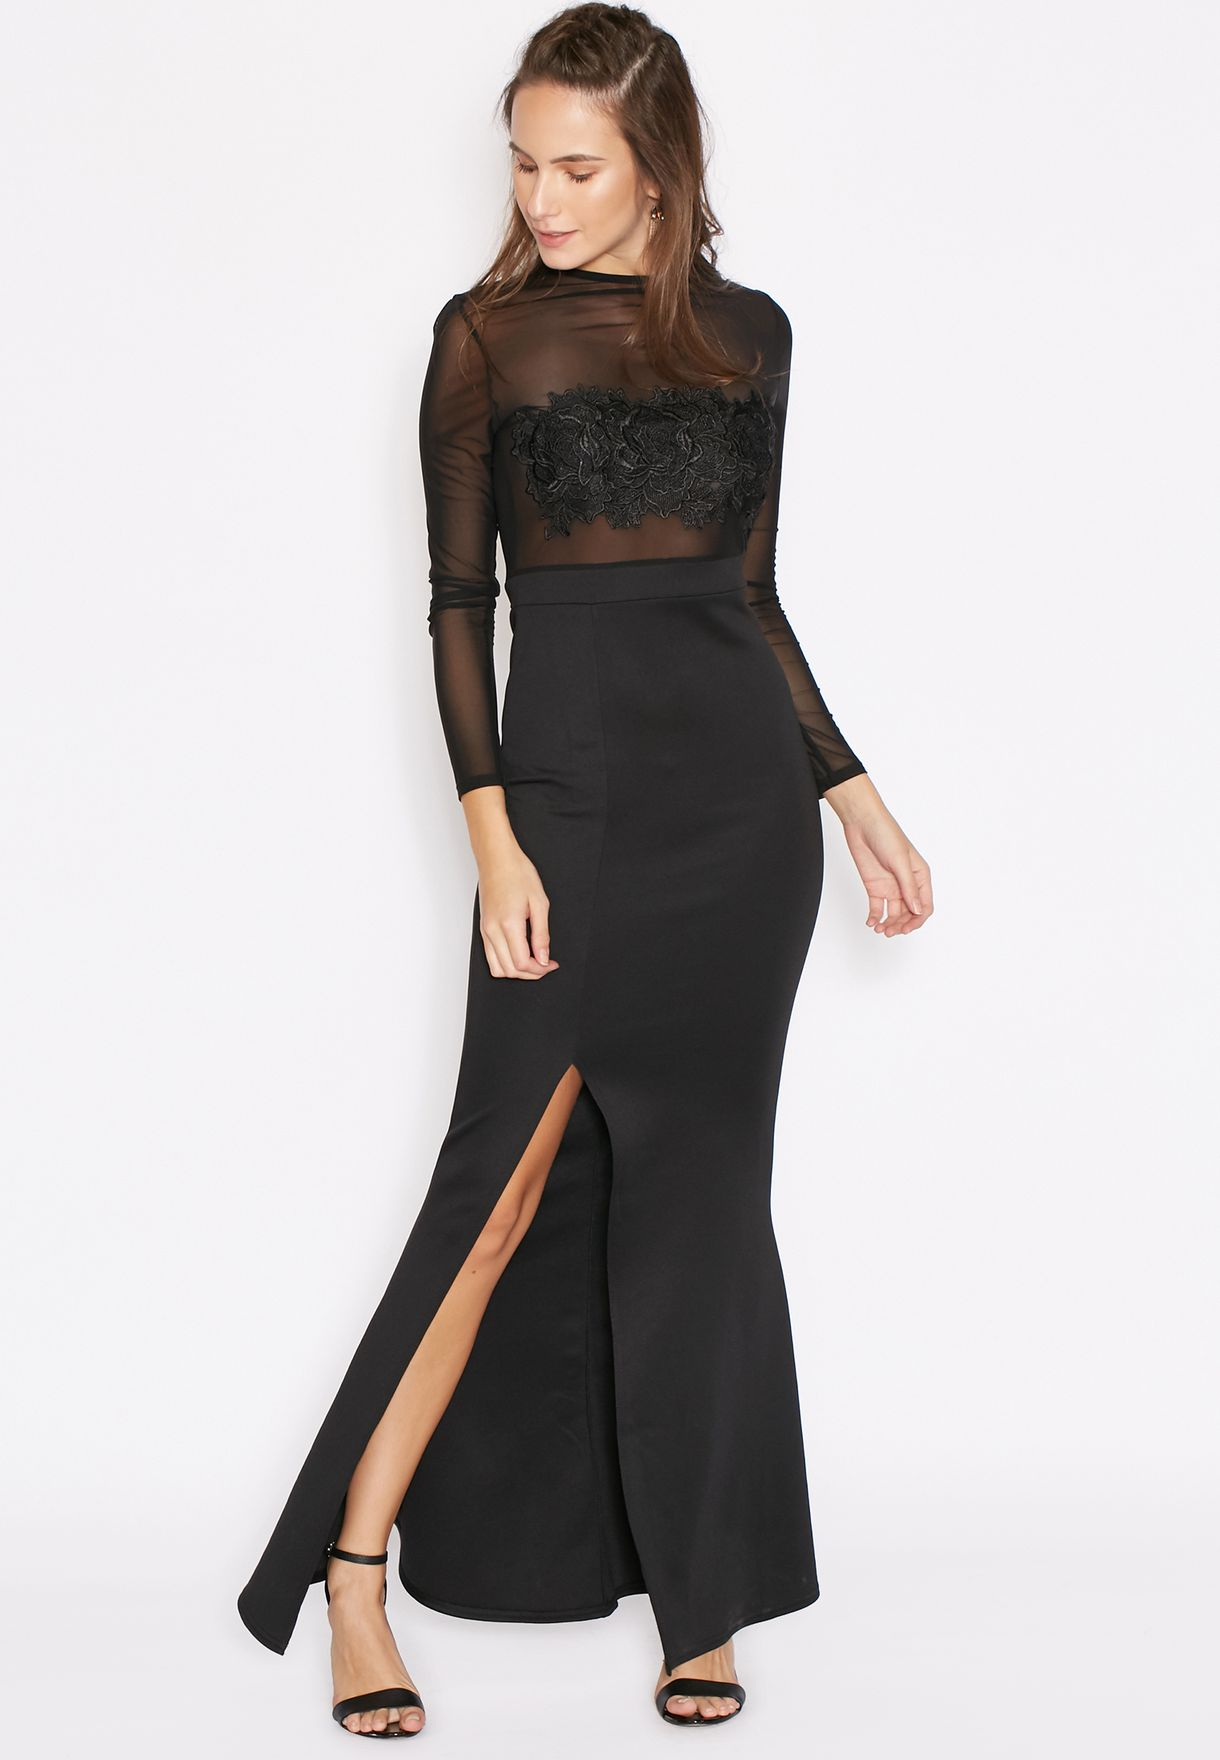 04d0afb6a2 Shop Missguided black Mesh Top Applique Maxi Dress for Women in ...